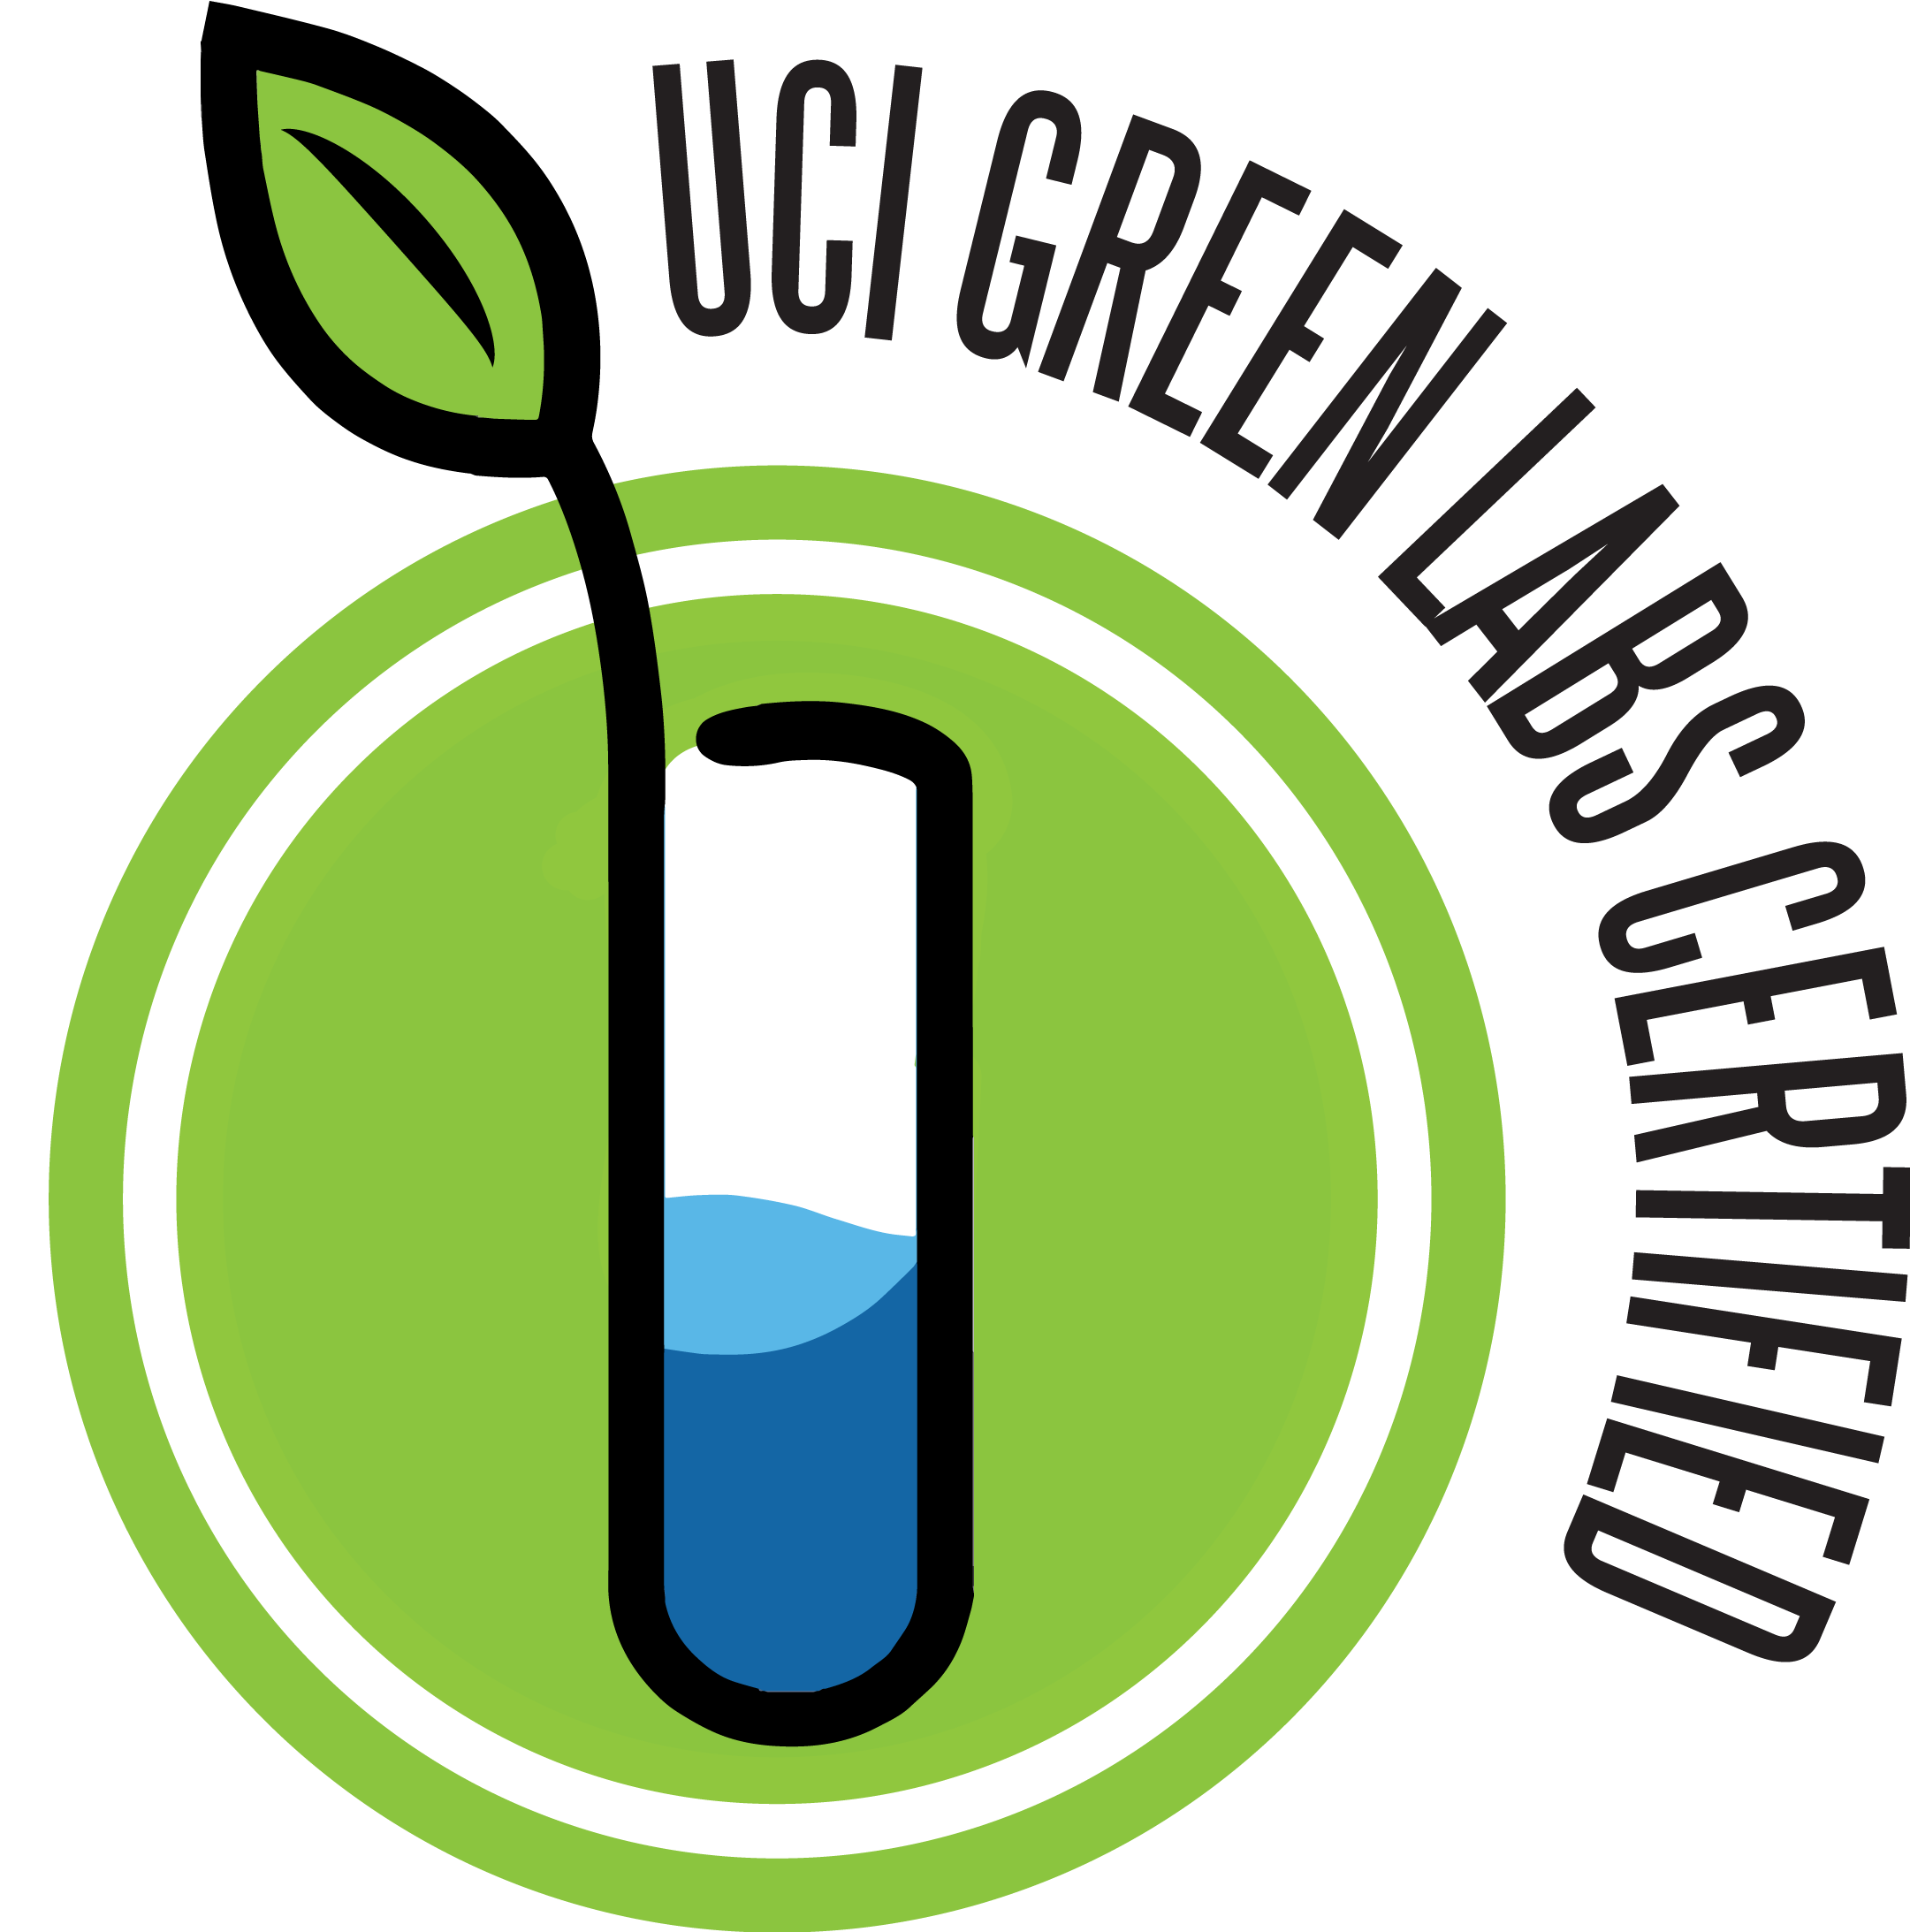 Uci green labs uc. Energy clipart sustainable world